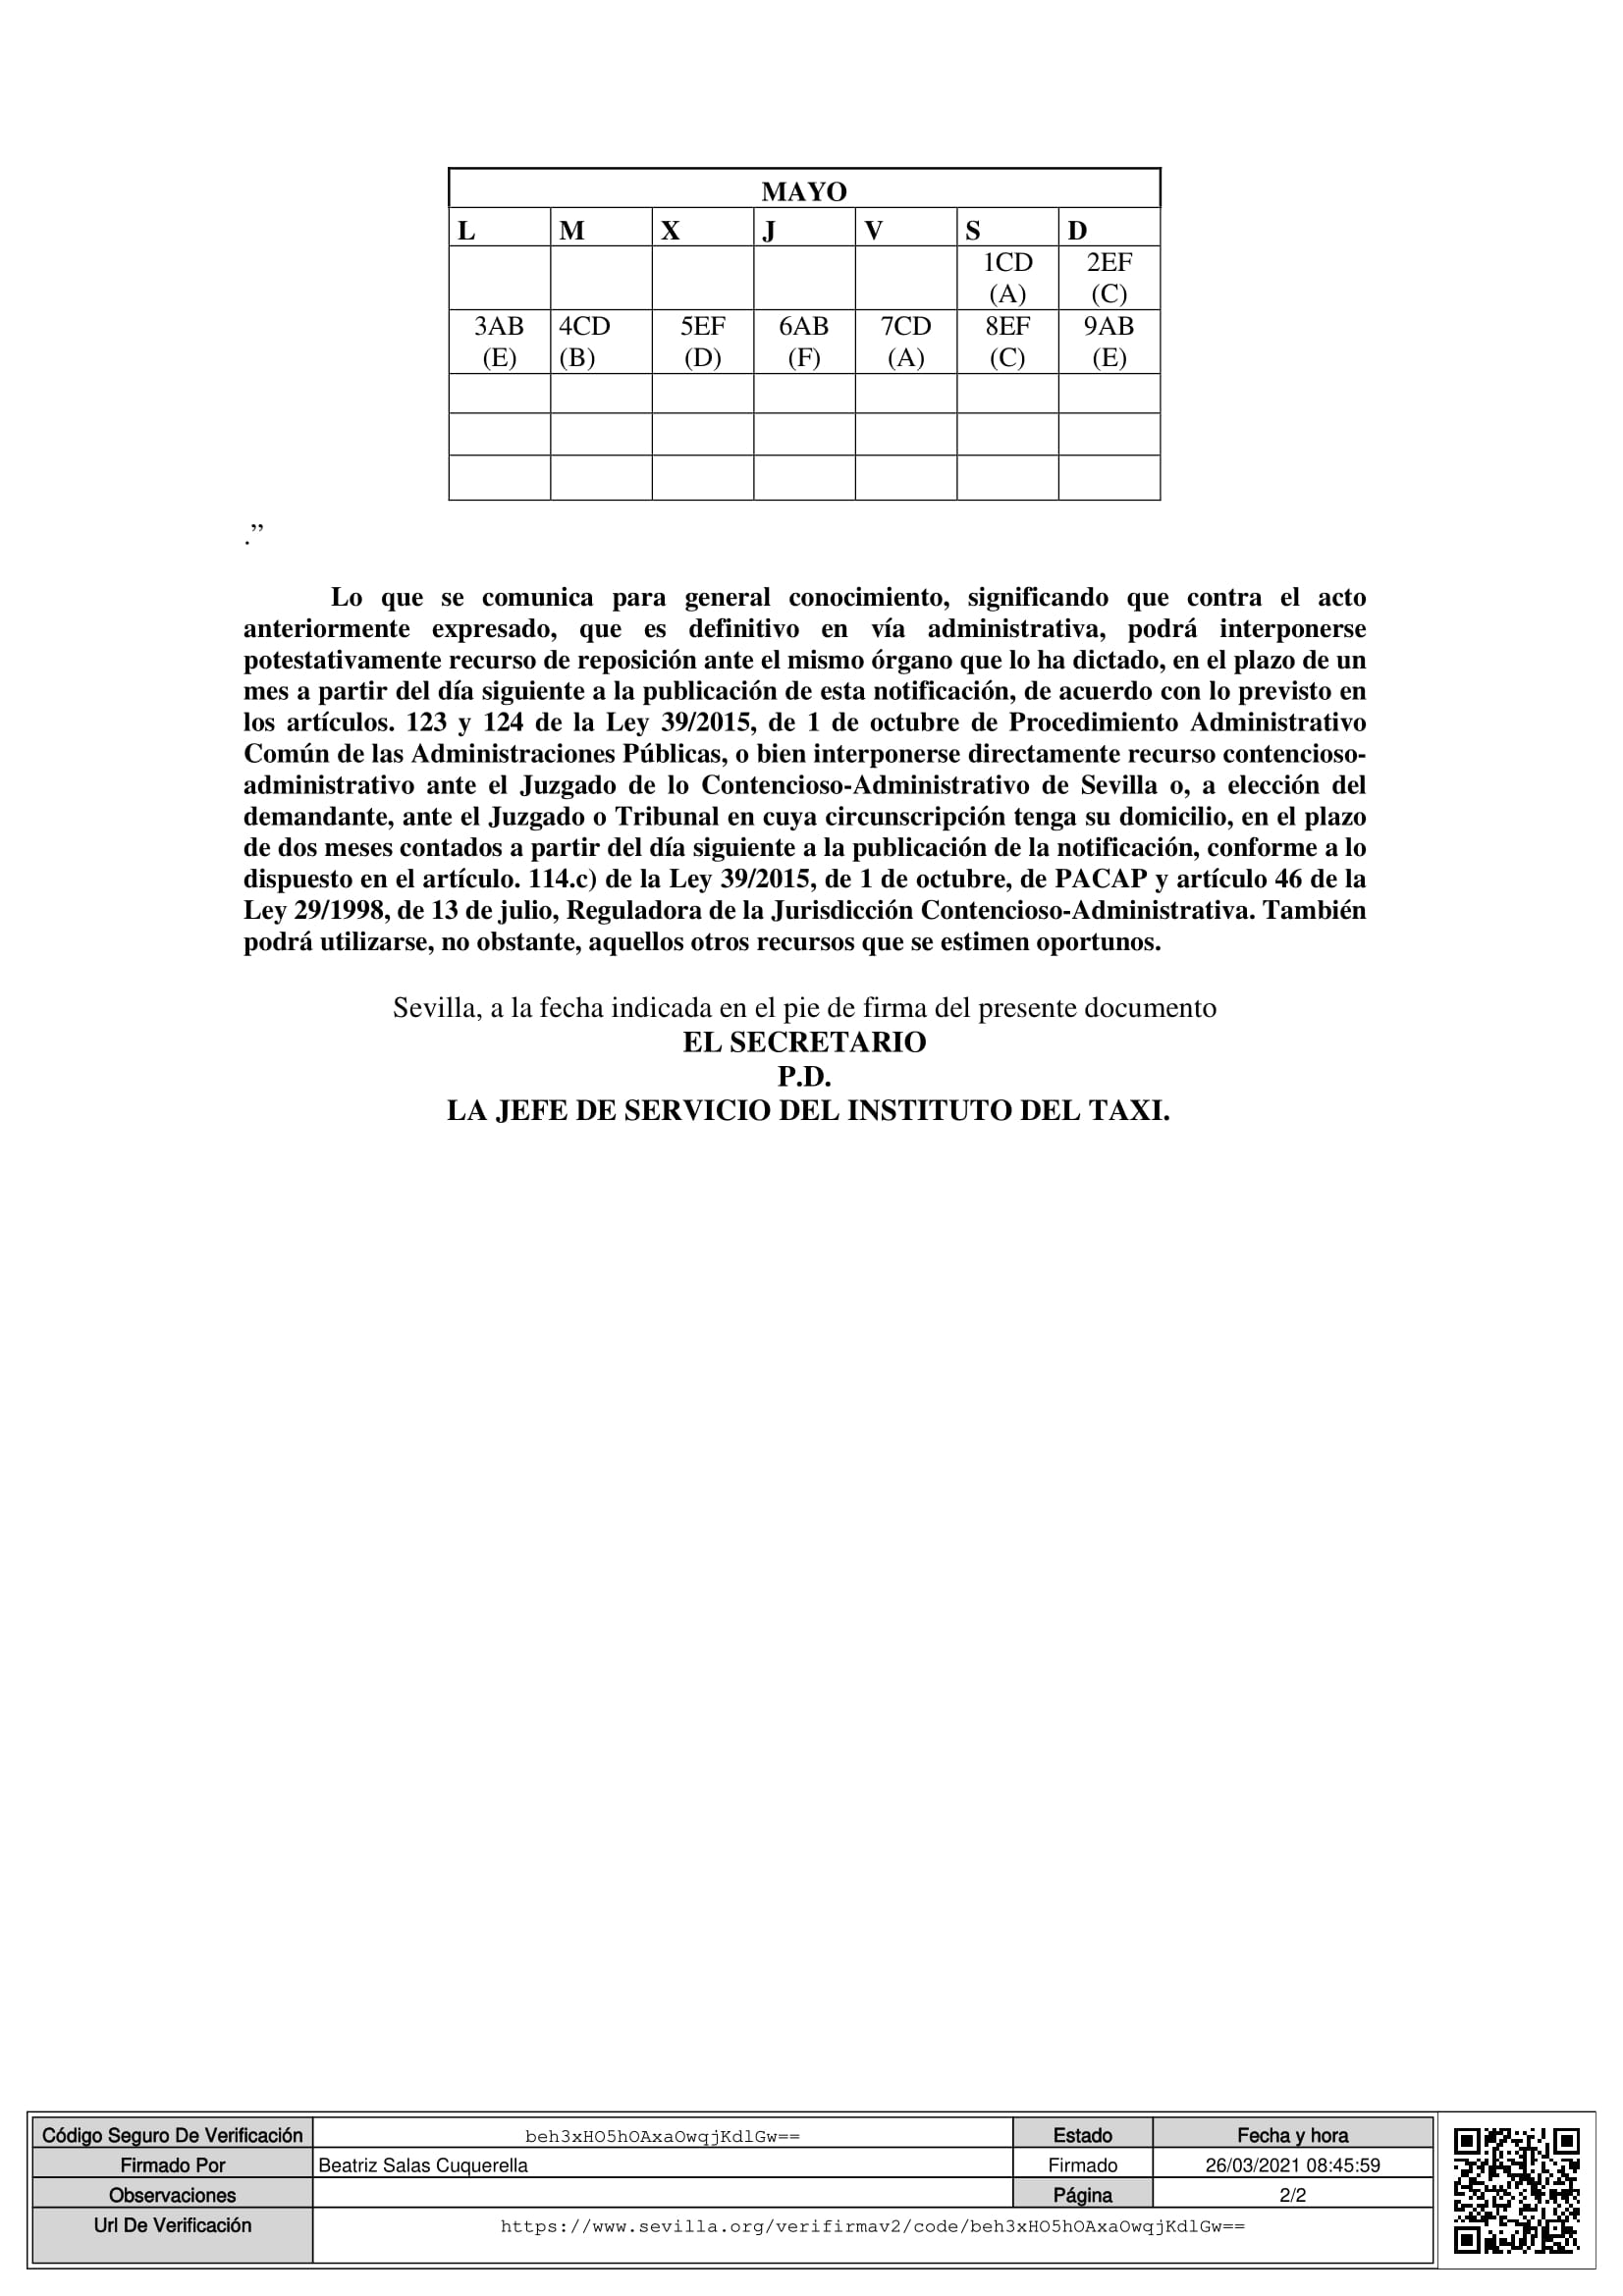 tablon-de-anuncios-modificacion-calendario-marz-abr-y-may-report-2.jpg